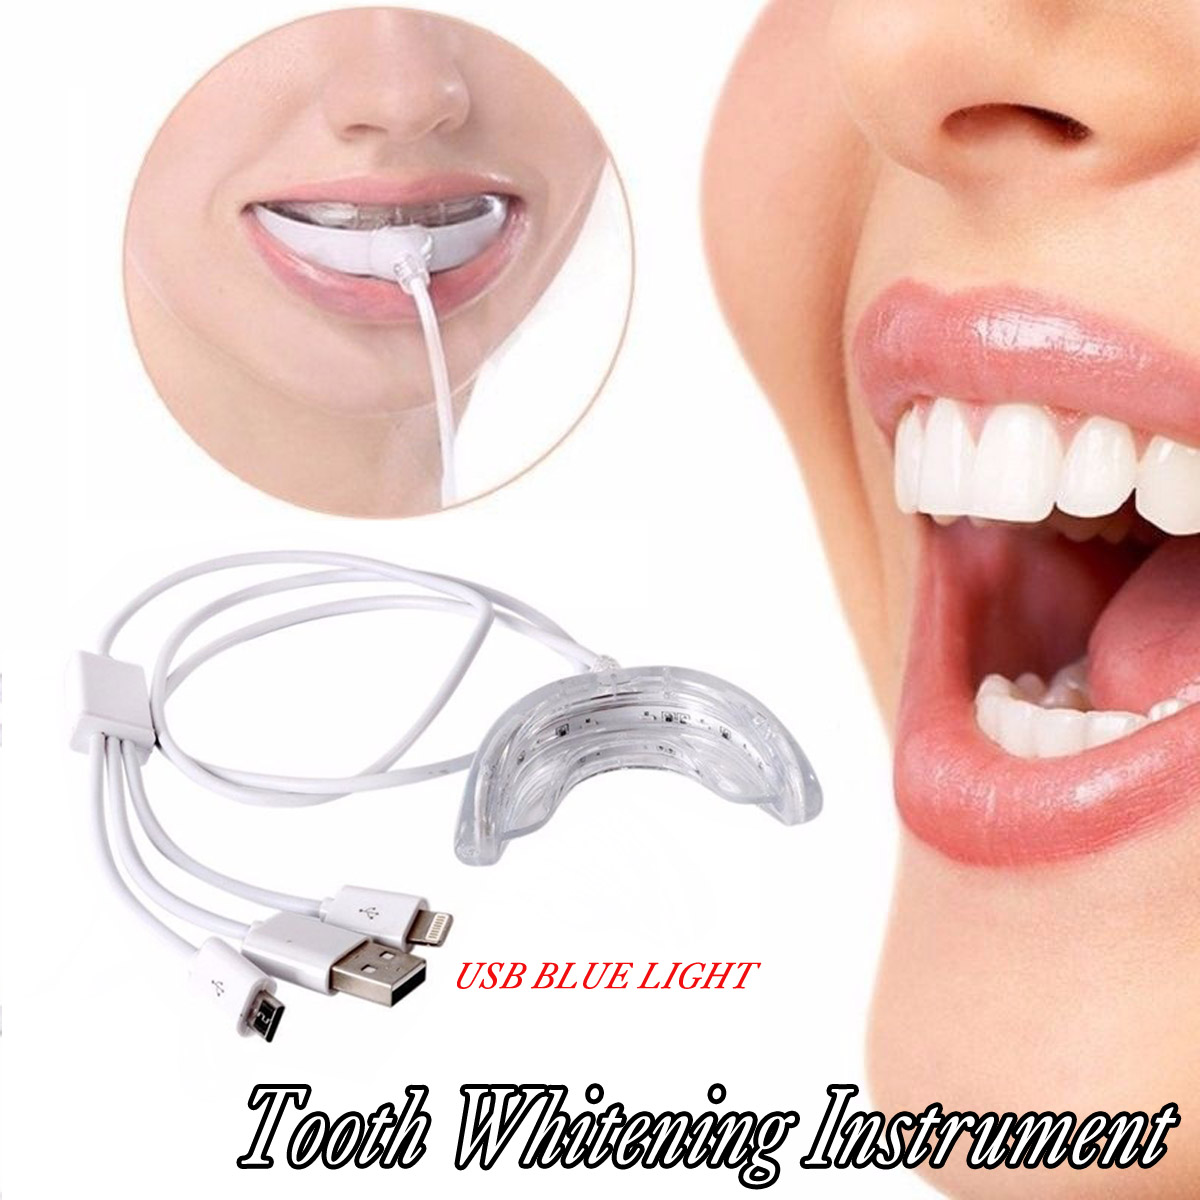 Usb Efficient Blue Light Tooth Whitening Instrument Cold Led Light Lamp Care Bleaching Teeth Accelerator Dental Instrument Oral Irrigators Aliexpress